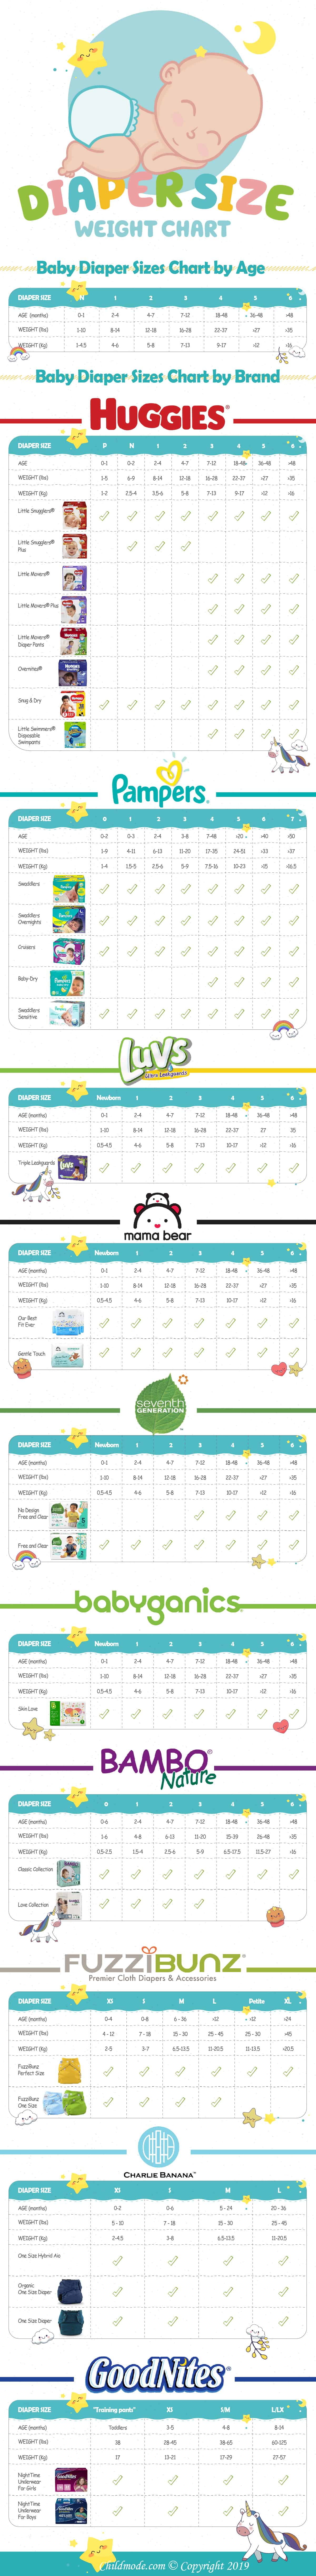 Diaper Size - Weight Chart_final